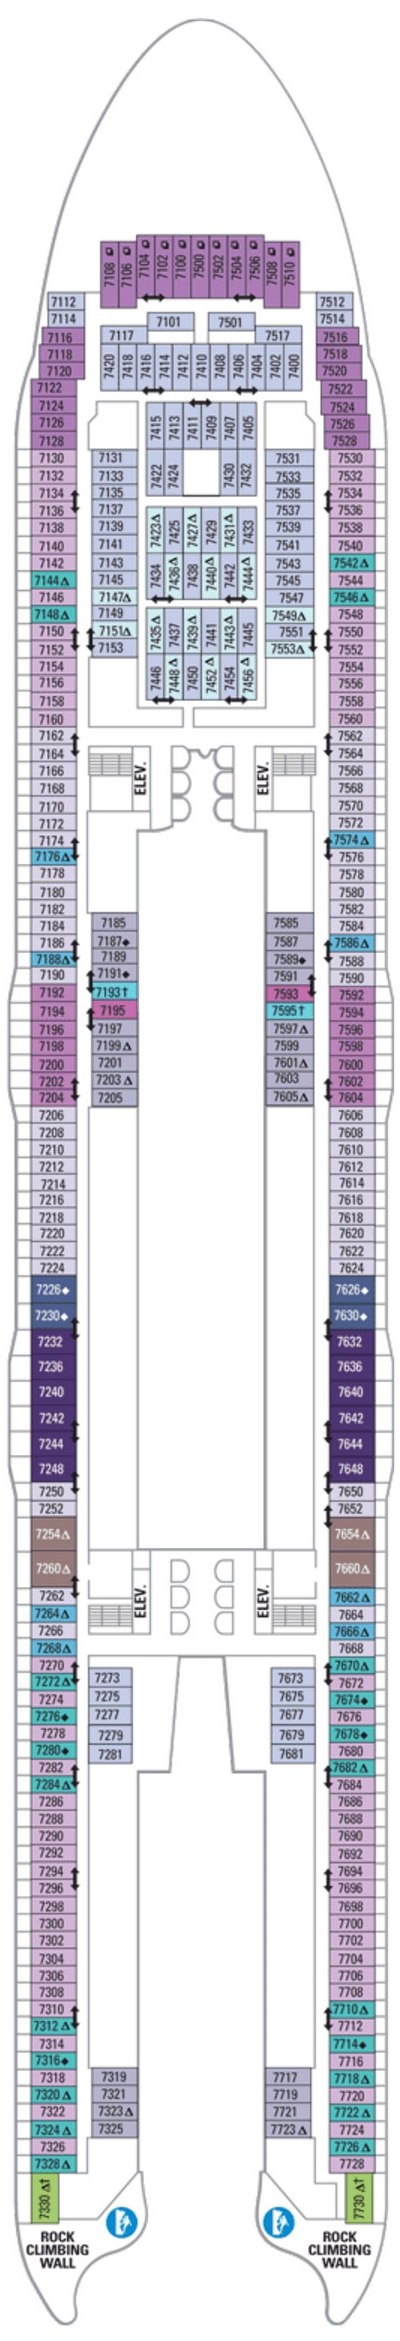 Allure Of The Seas Deck 7 layout